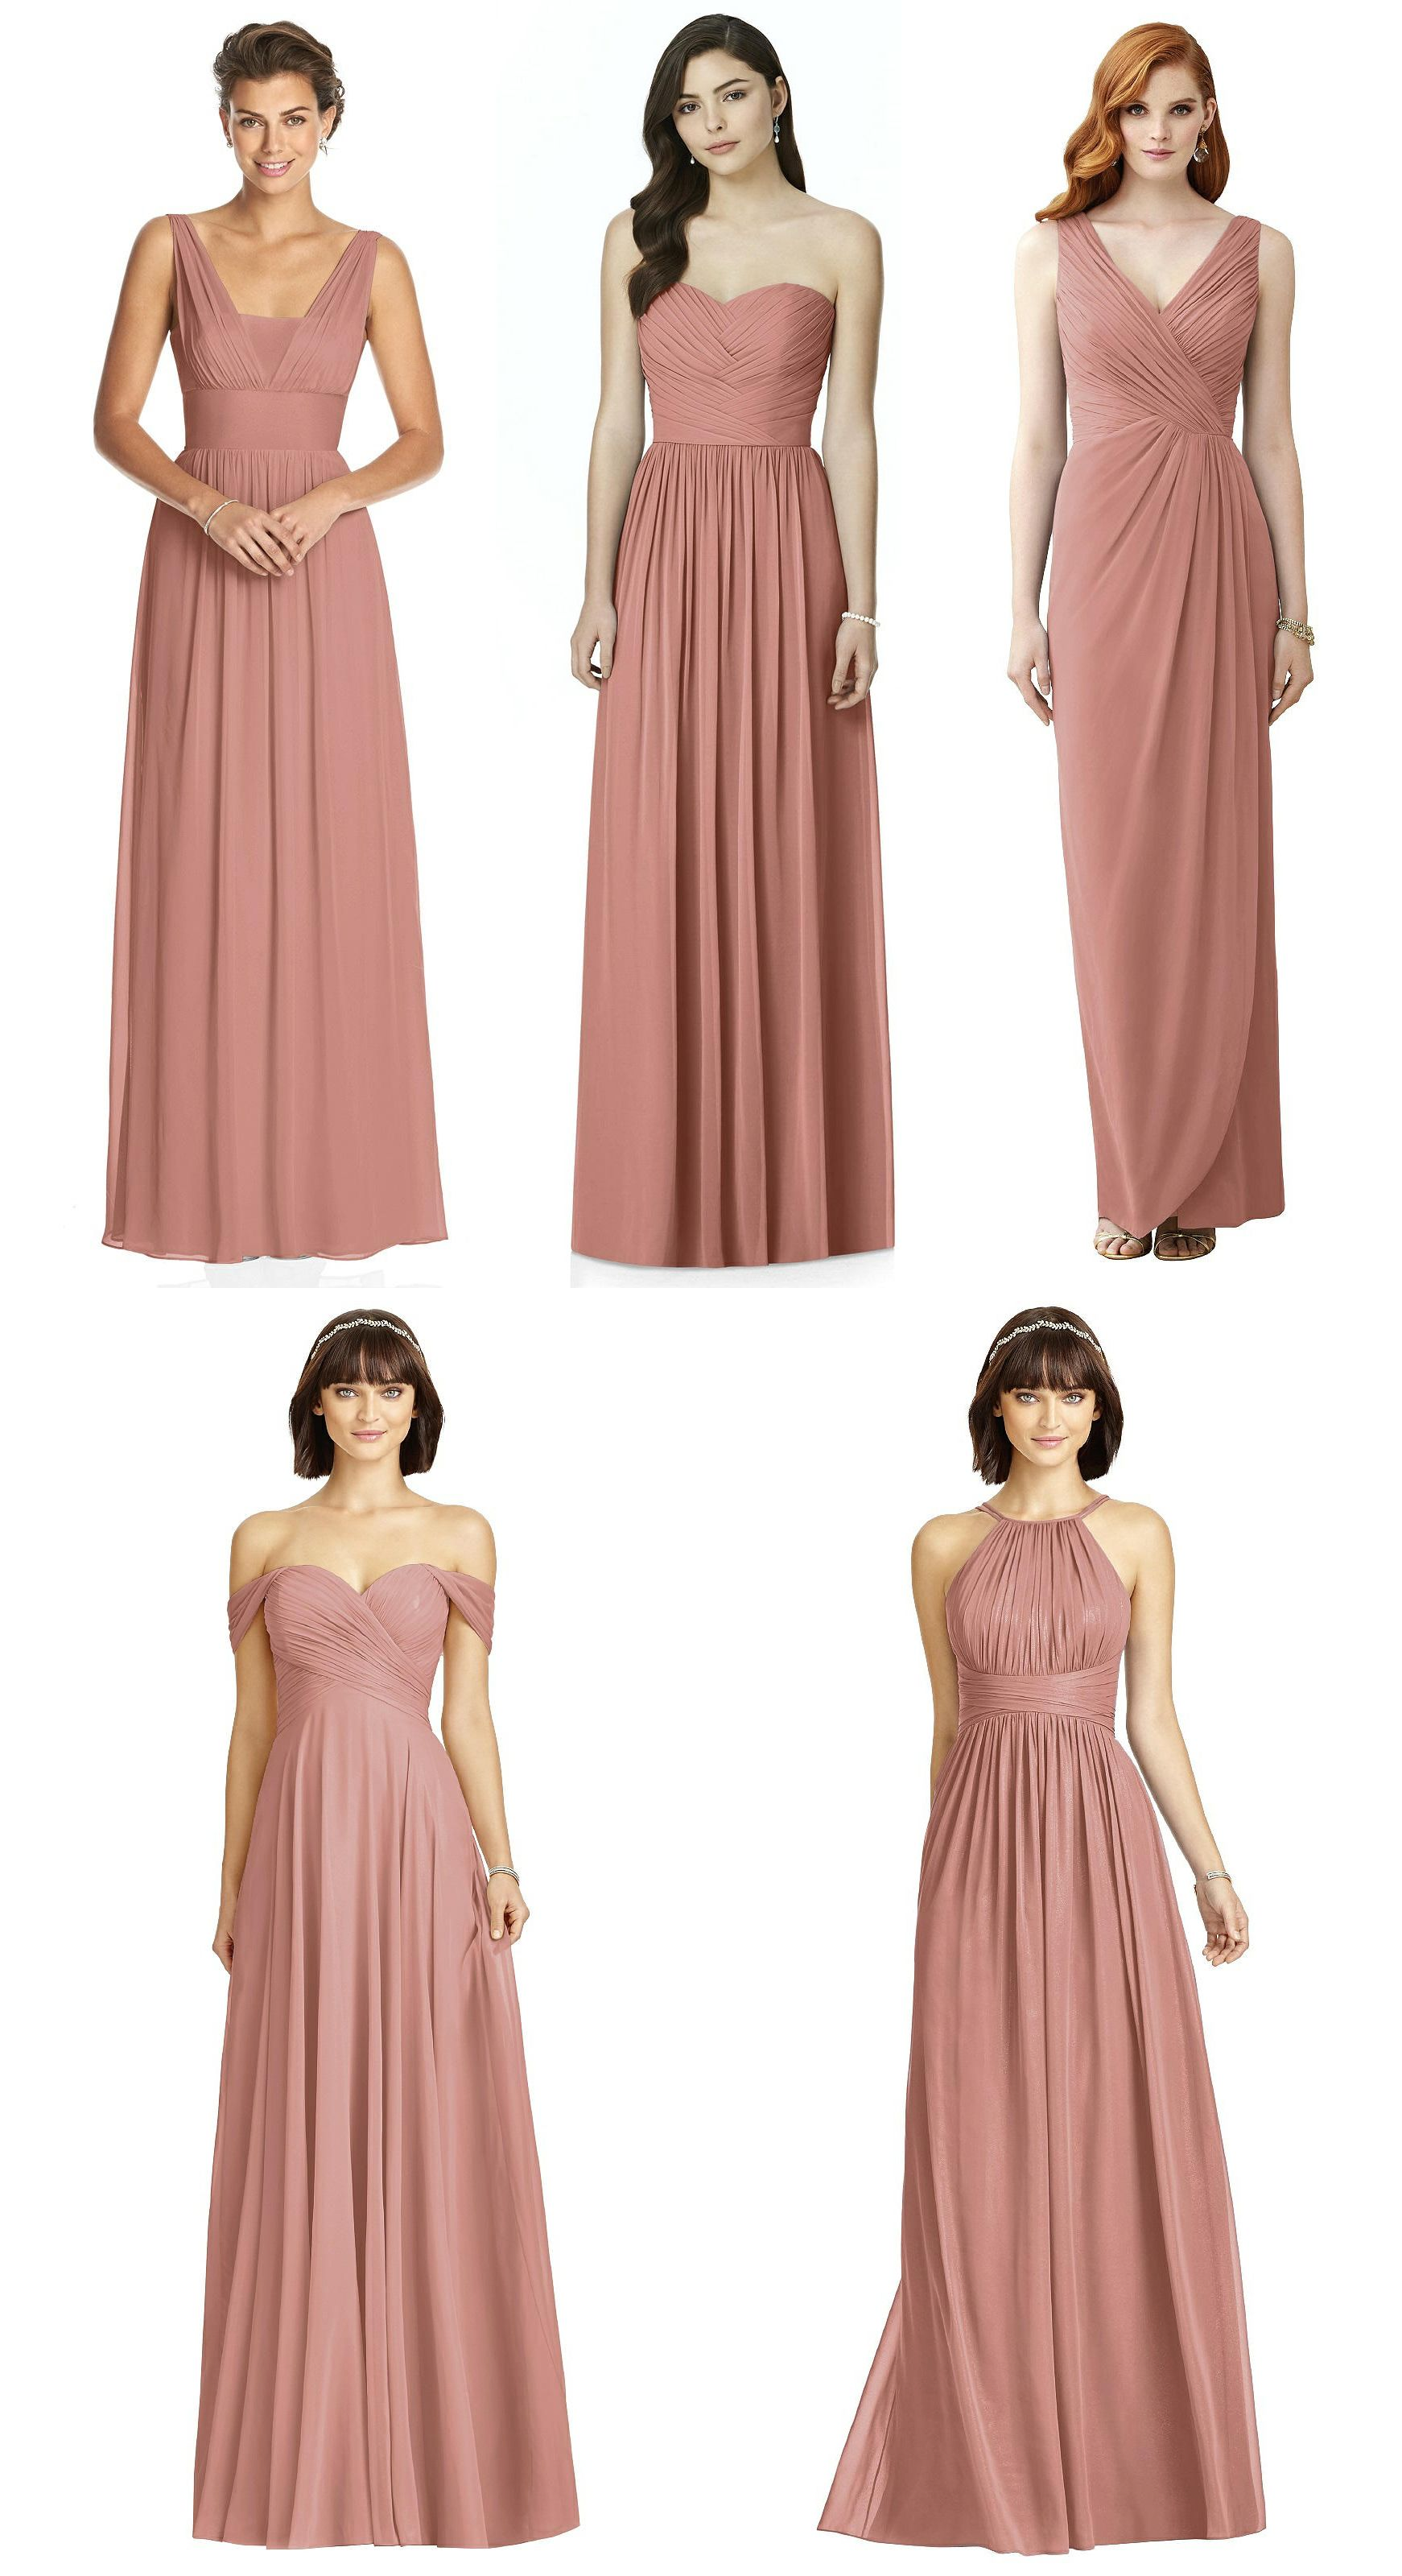 Dessy Desert Rose Bridesmaid Dresses 3026 2991 2958 2970 And 2969 Dessy Bridesmaid Dresses Rose Bridesmaid Dresses Bridesmaid Colors